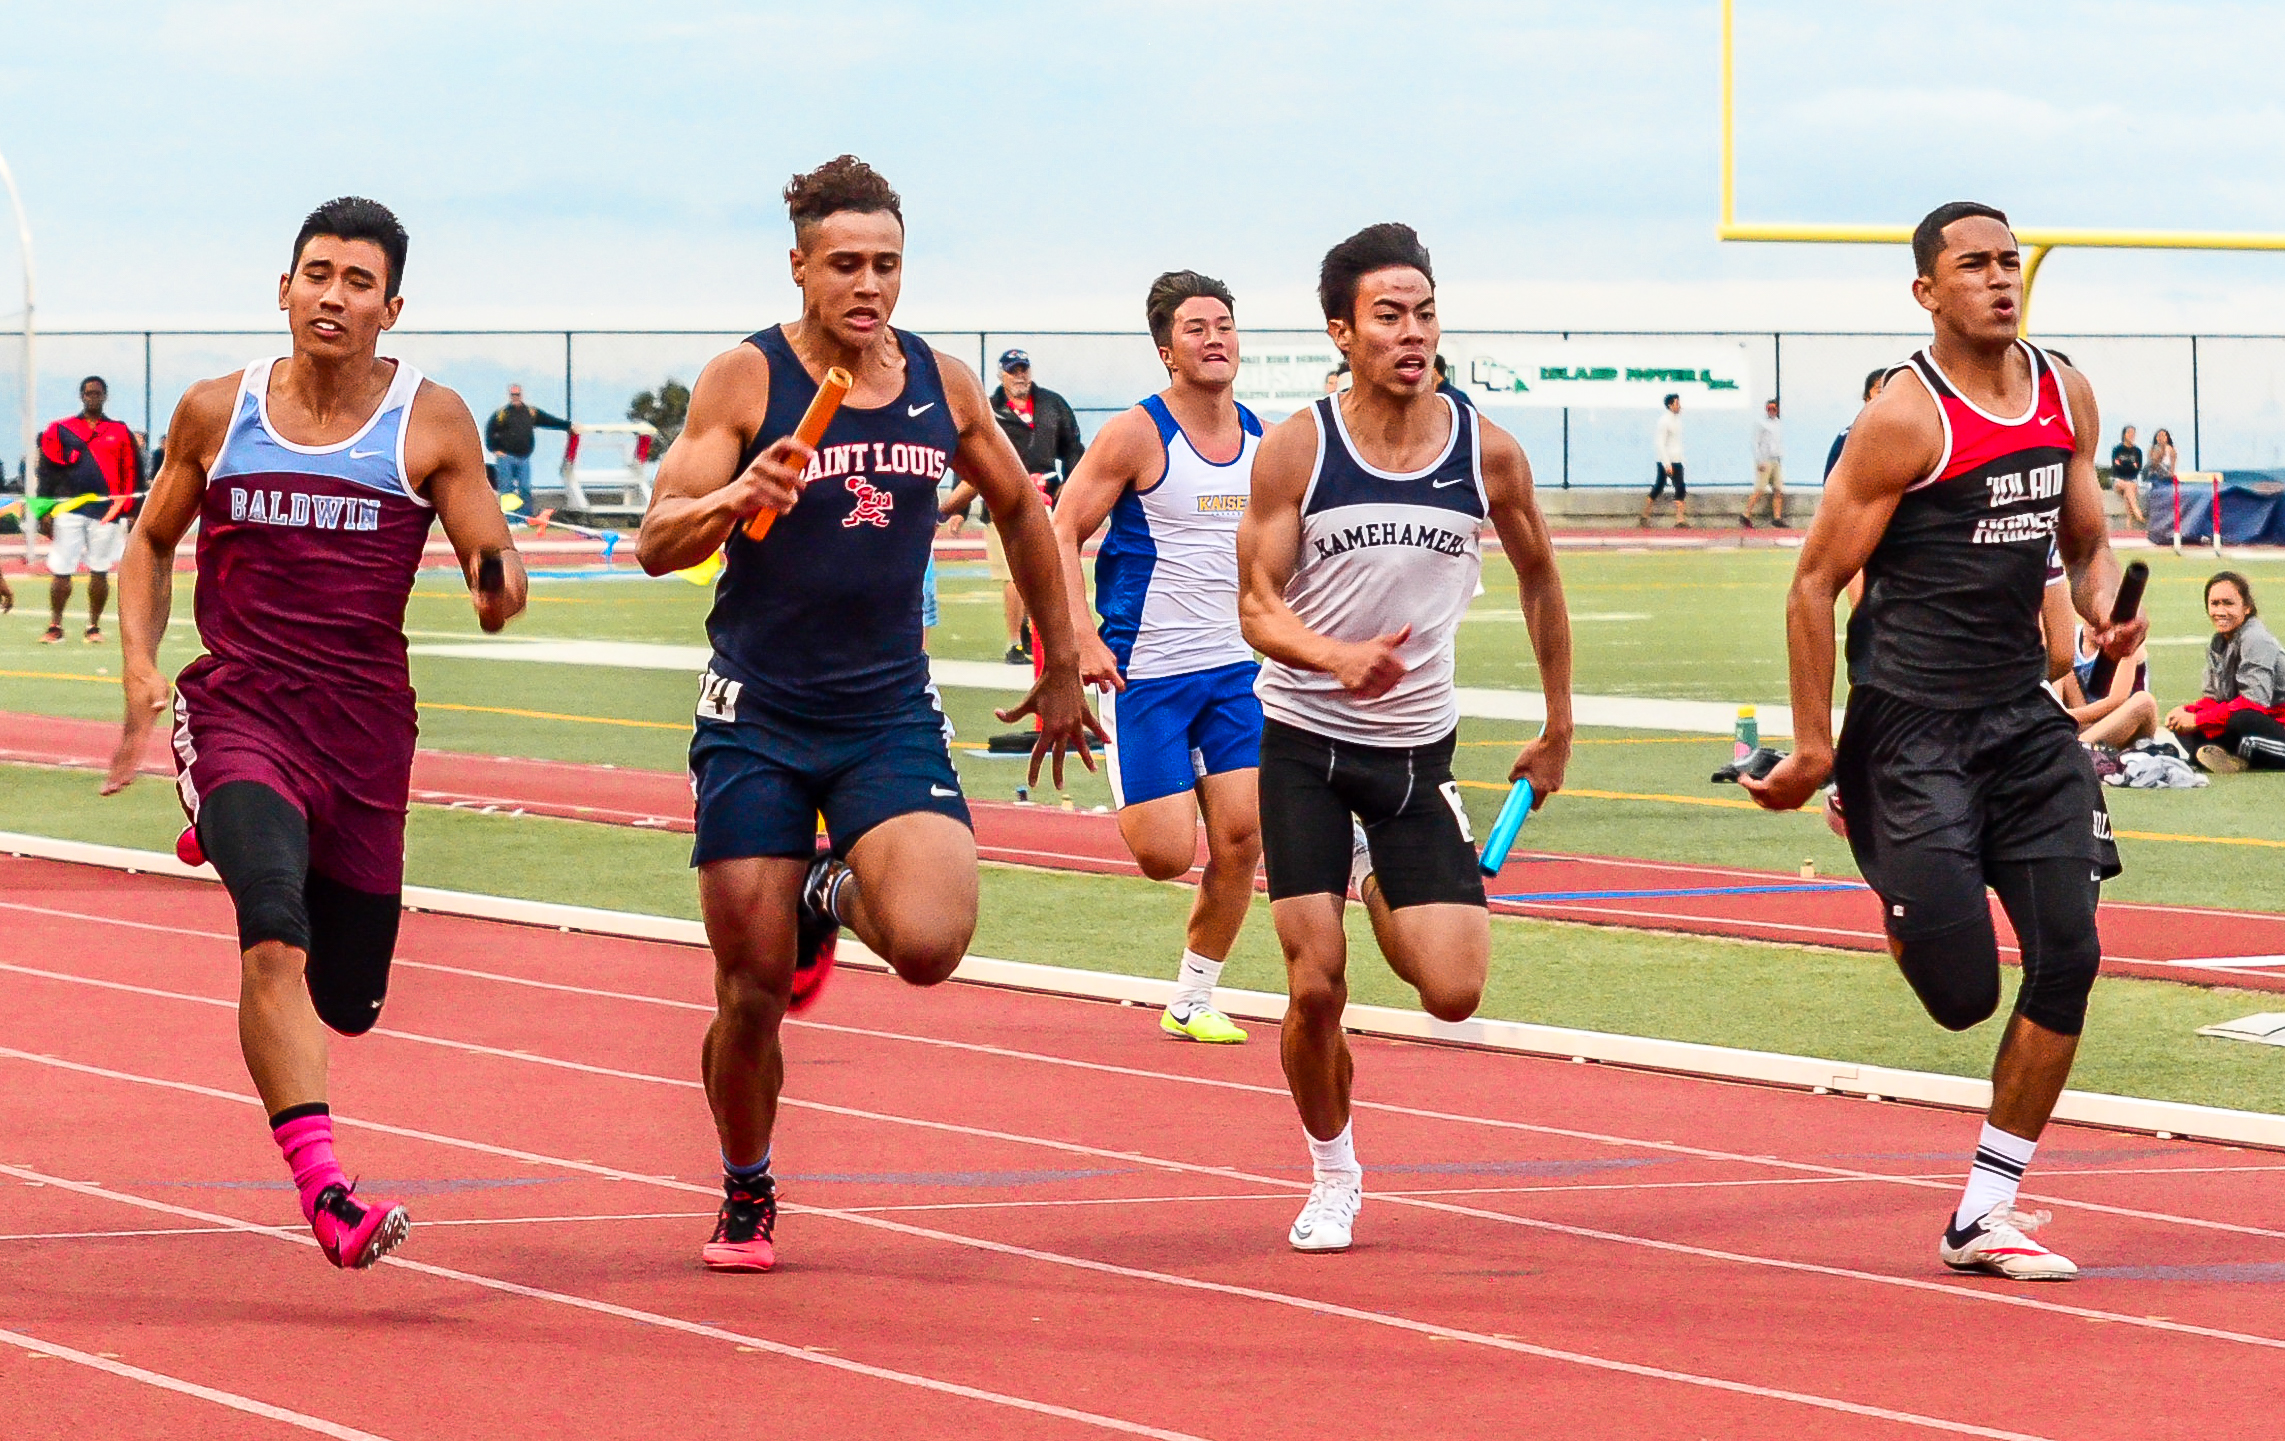 Baldwin's Baily Kaopuiki (left) edged out Saint Louis, Kamehameha Kapalama and Iolani to win the boys 4x100 relay last Saturday. Photo by Rodney S. Yap.